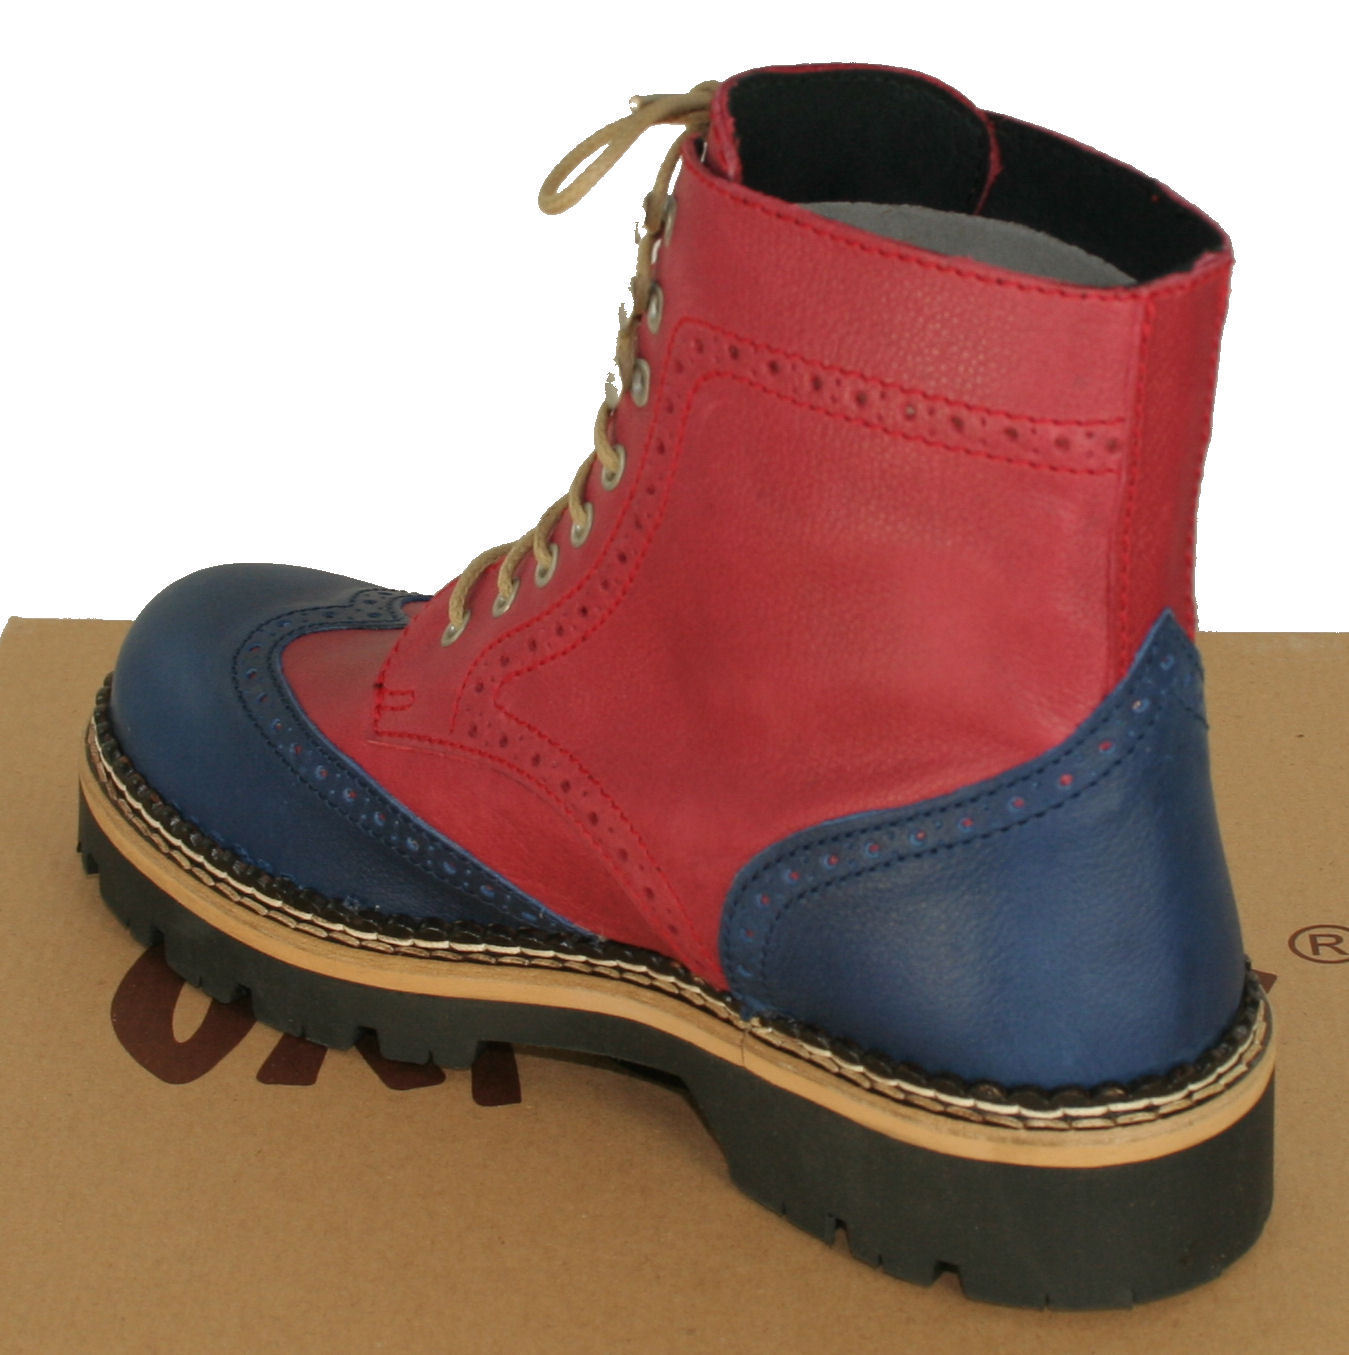 Oxygen Chunky Brogue Lace Up Berlin Boot Berlin Up ROT/Blau Größes 36 to 40 1af5e8